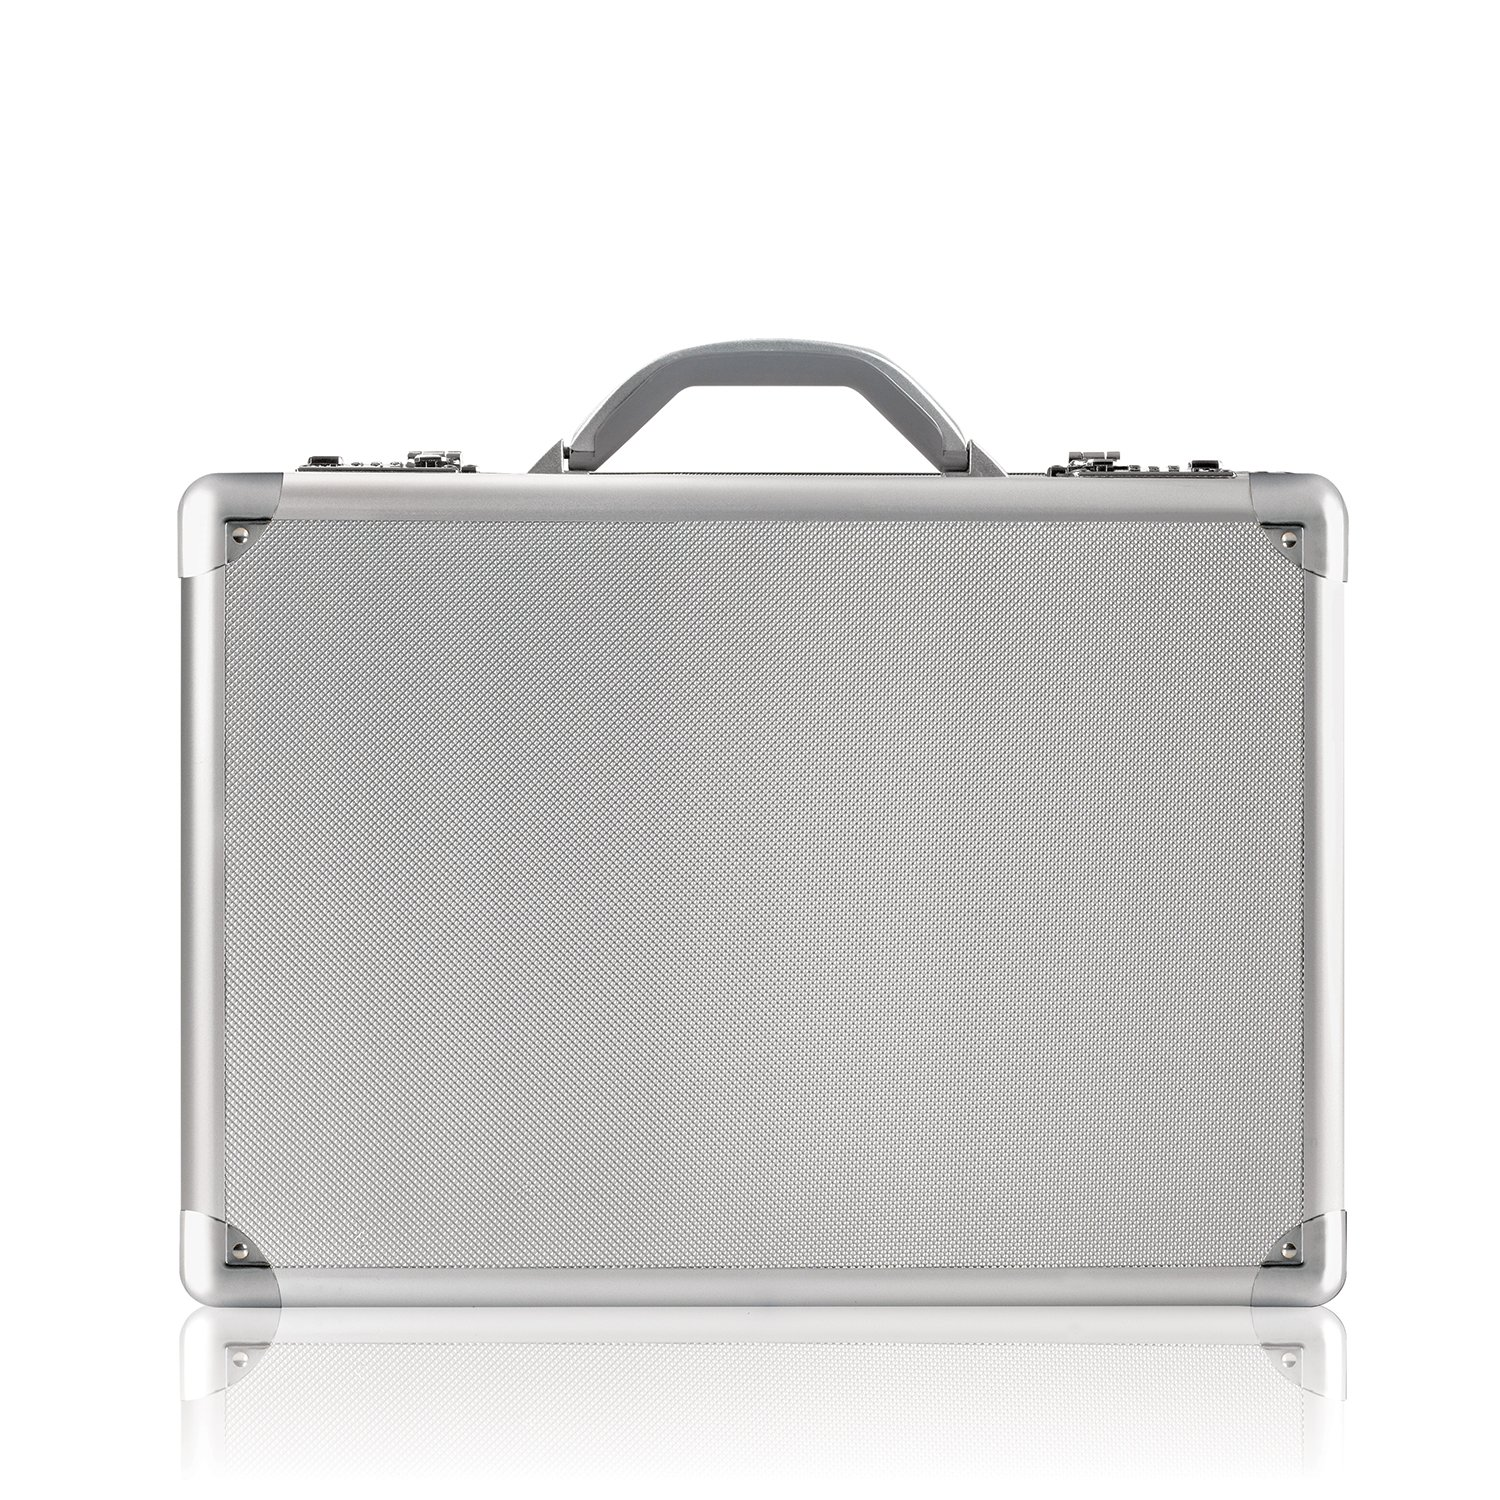 SOLO Fifth Avenue 17.3 Inch Laptop Attaché, Hard-sided with Combination Locks Silver AC100-10